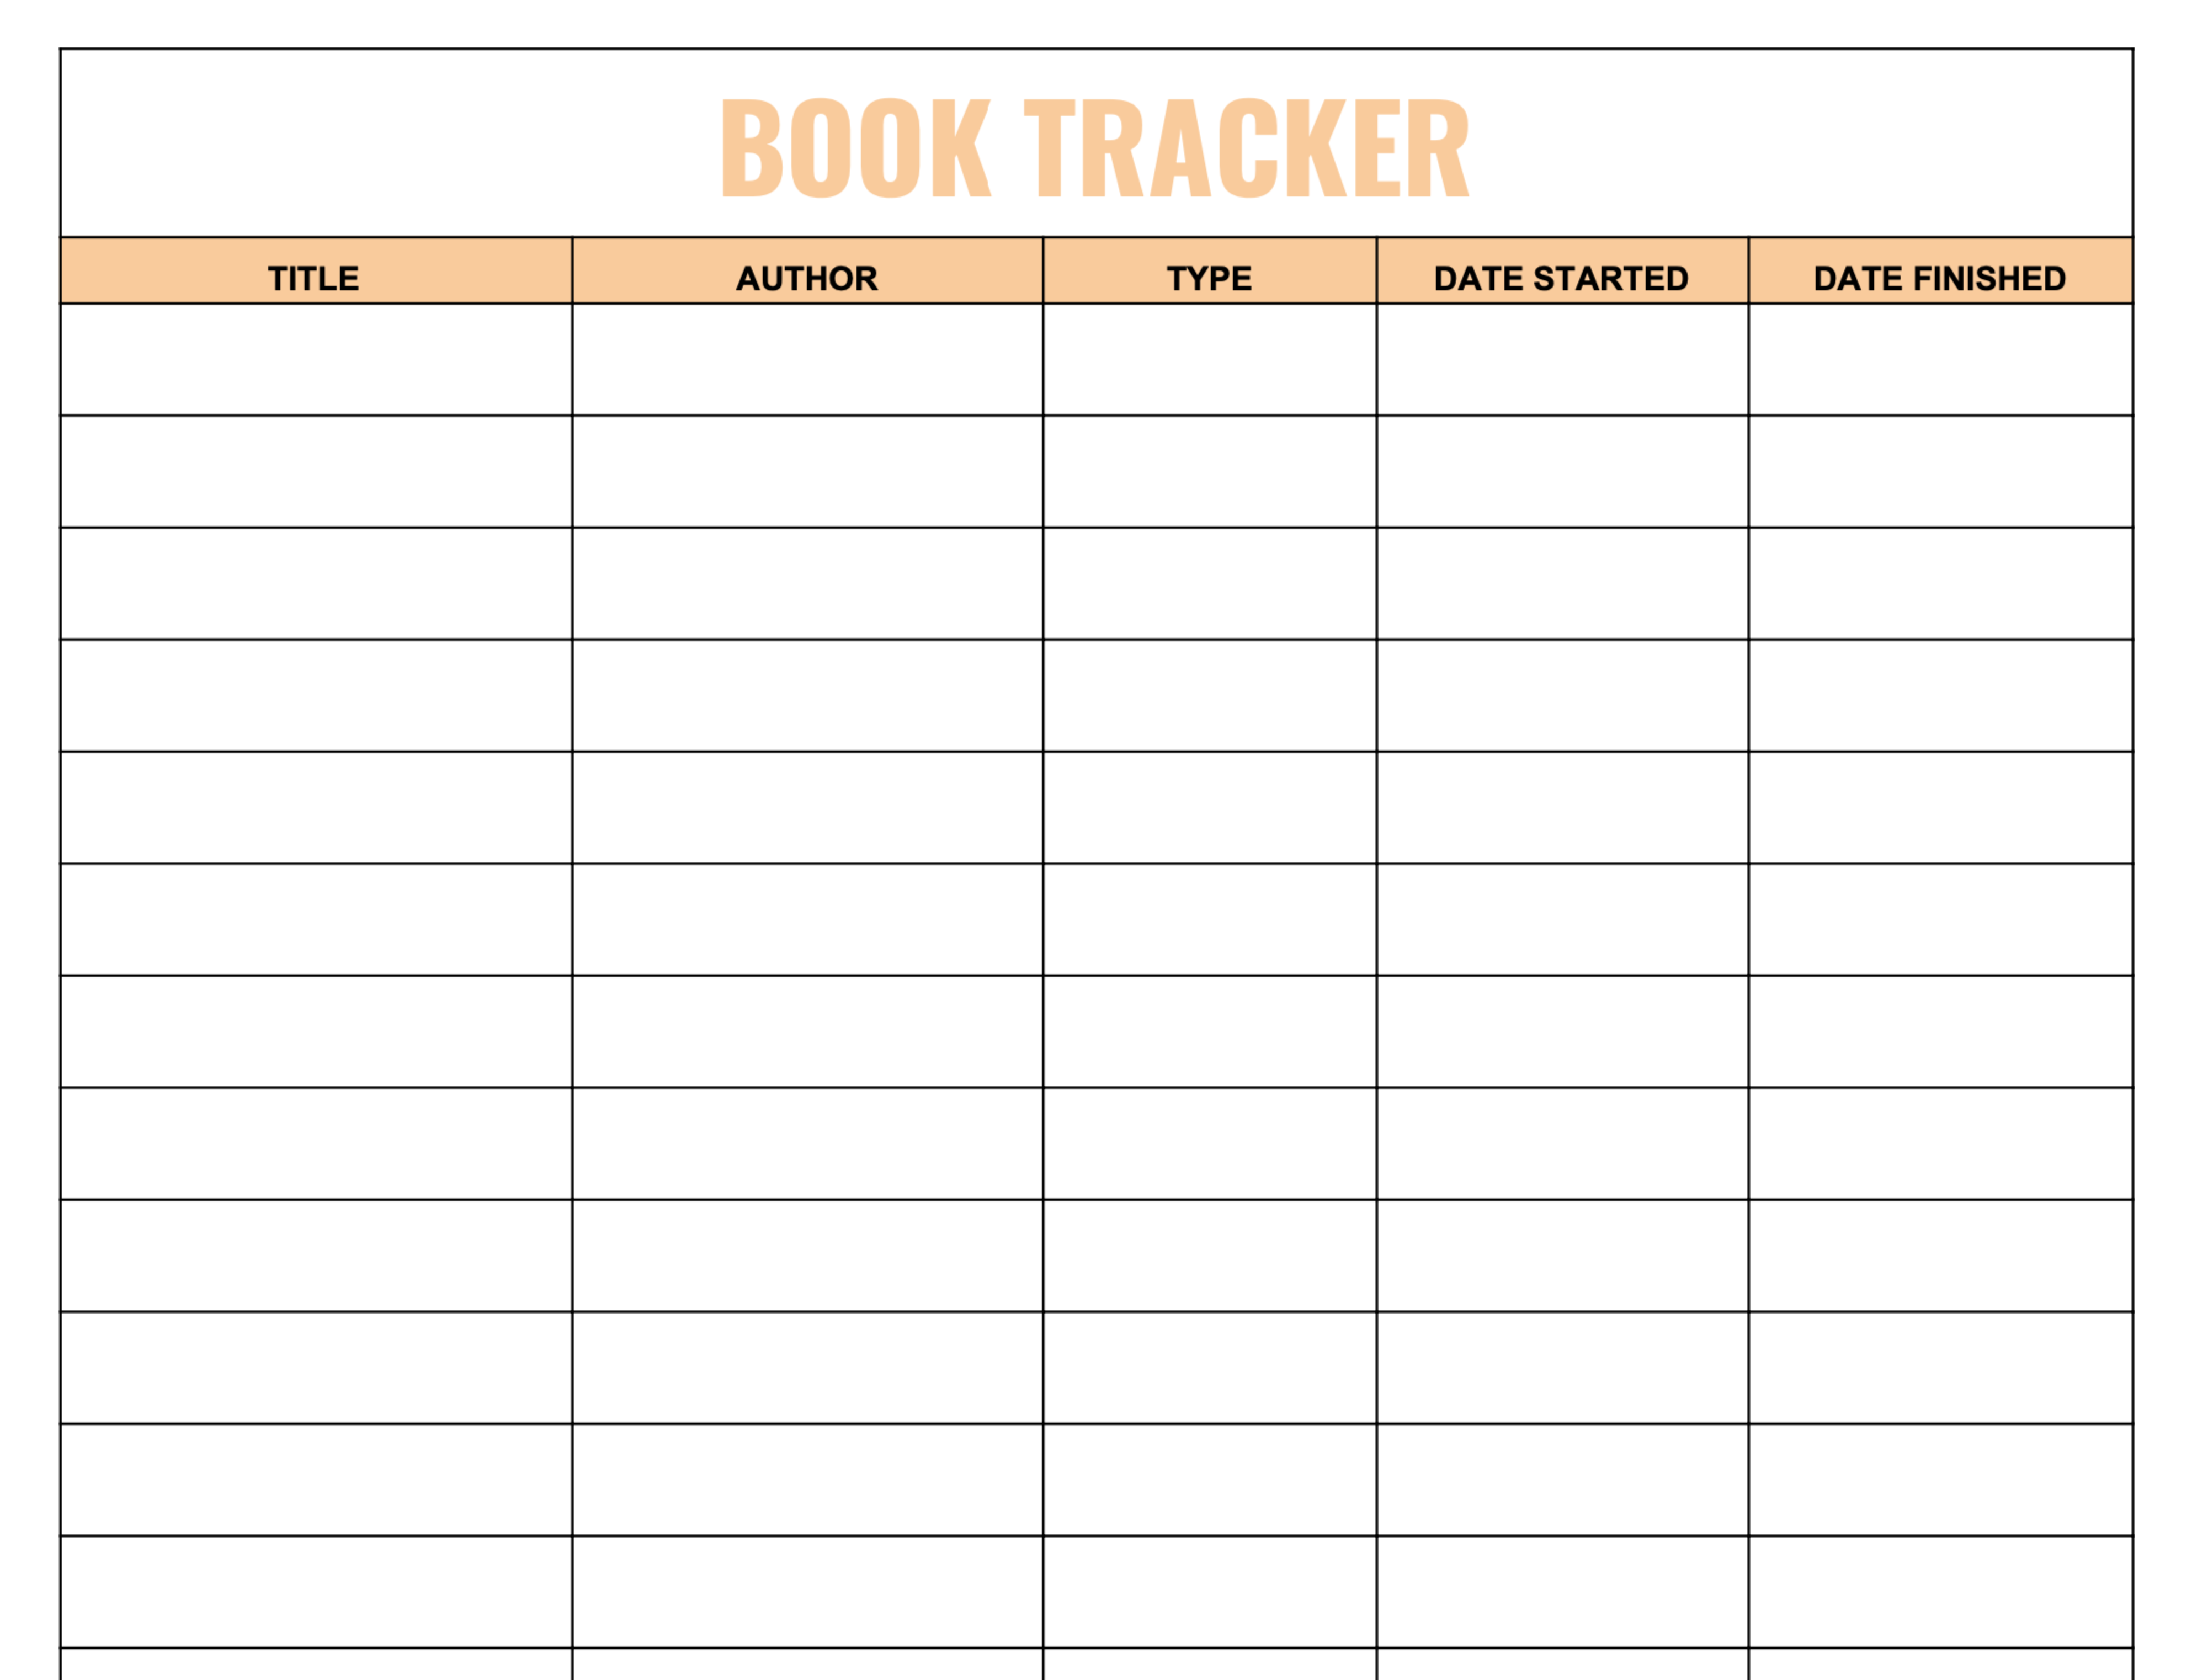 Book Tracker Download